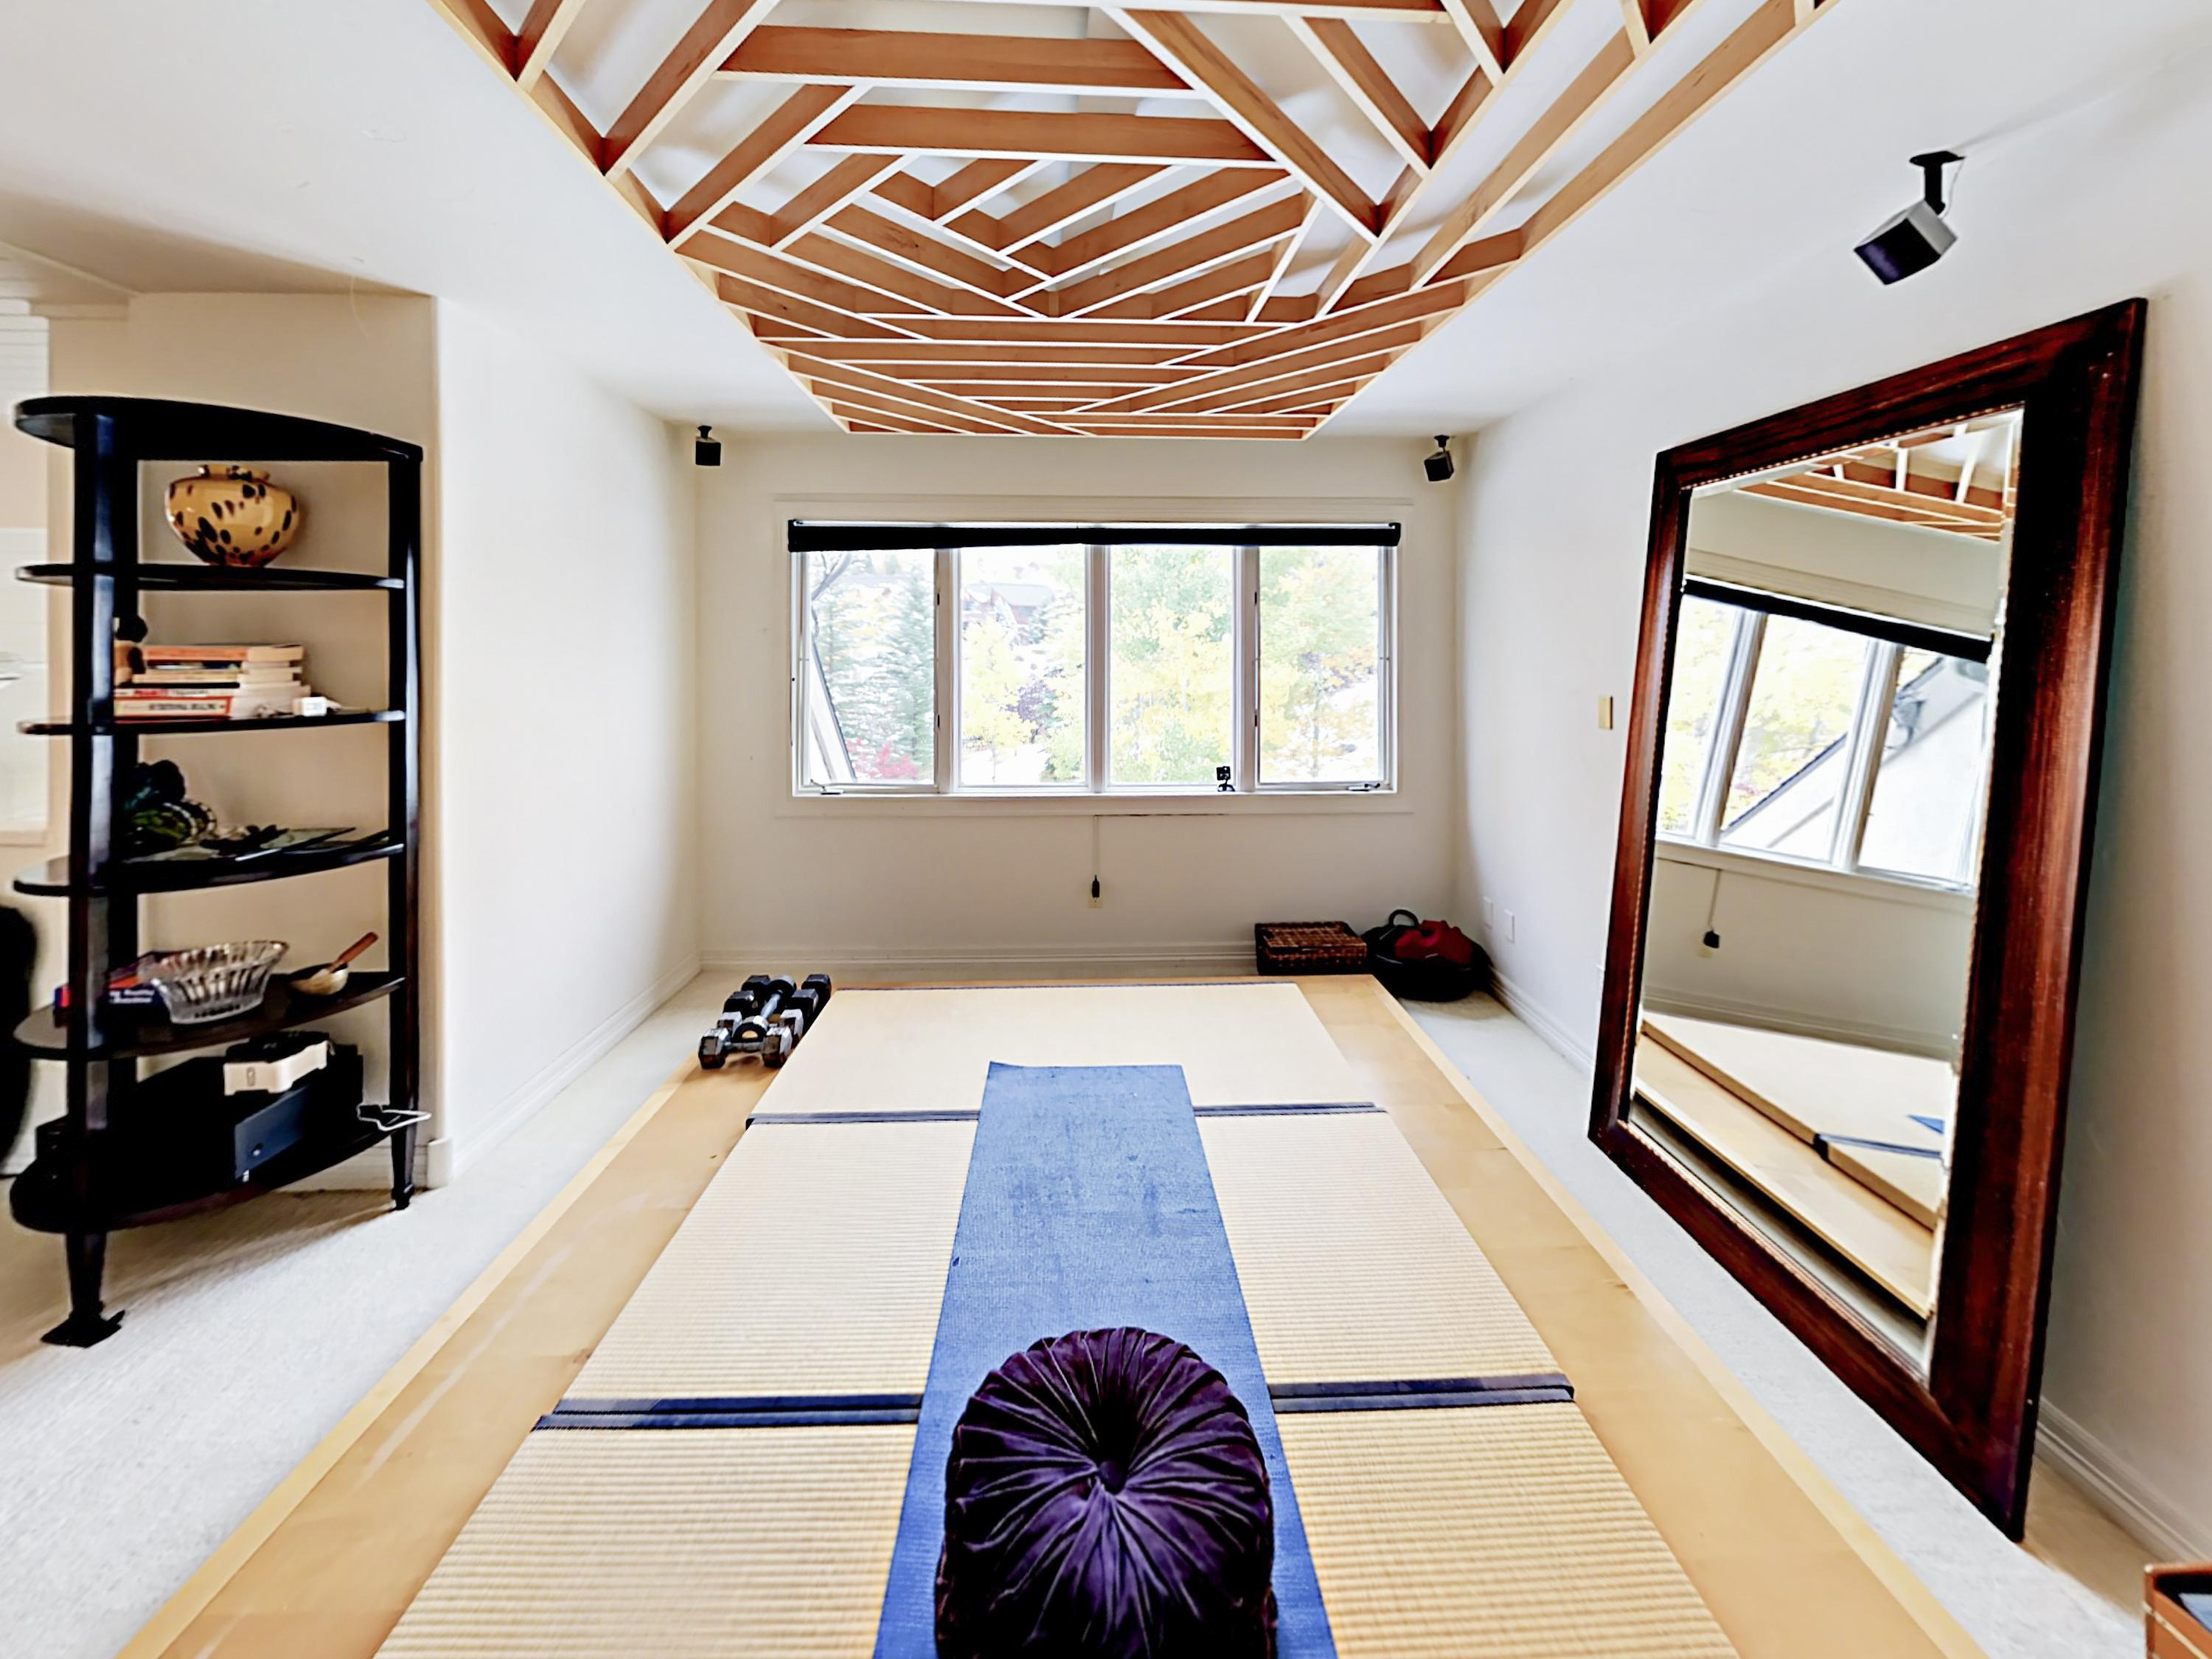 Upstairs, you'll find this tranquil yoga space.